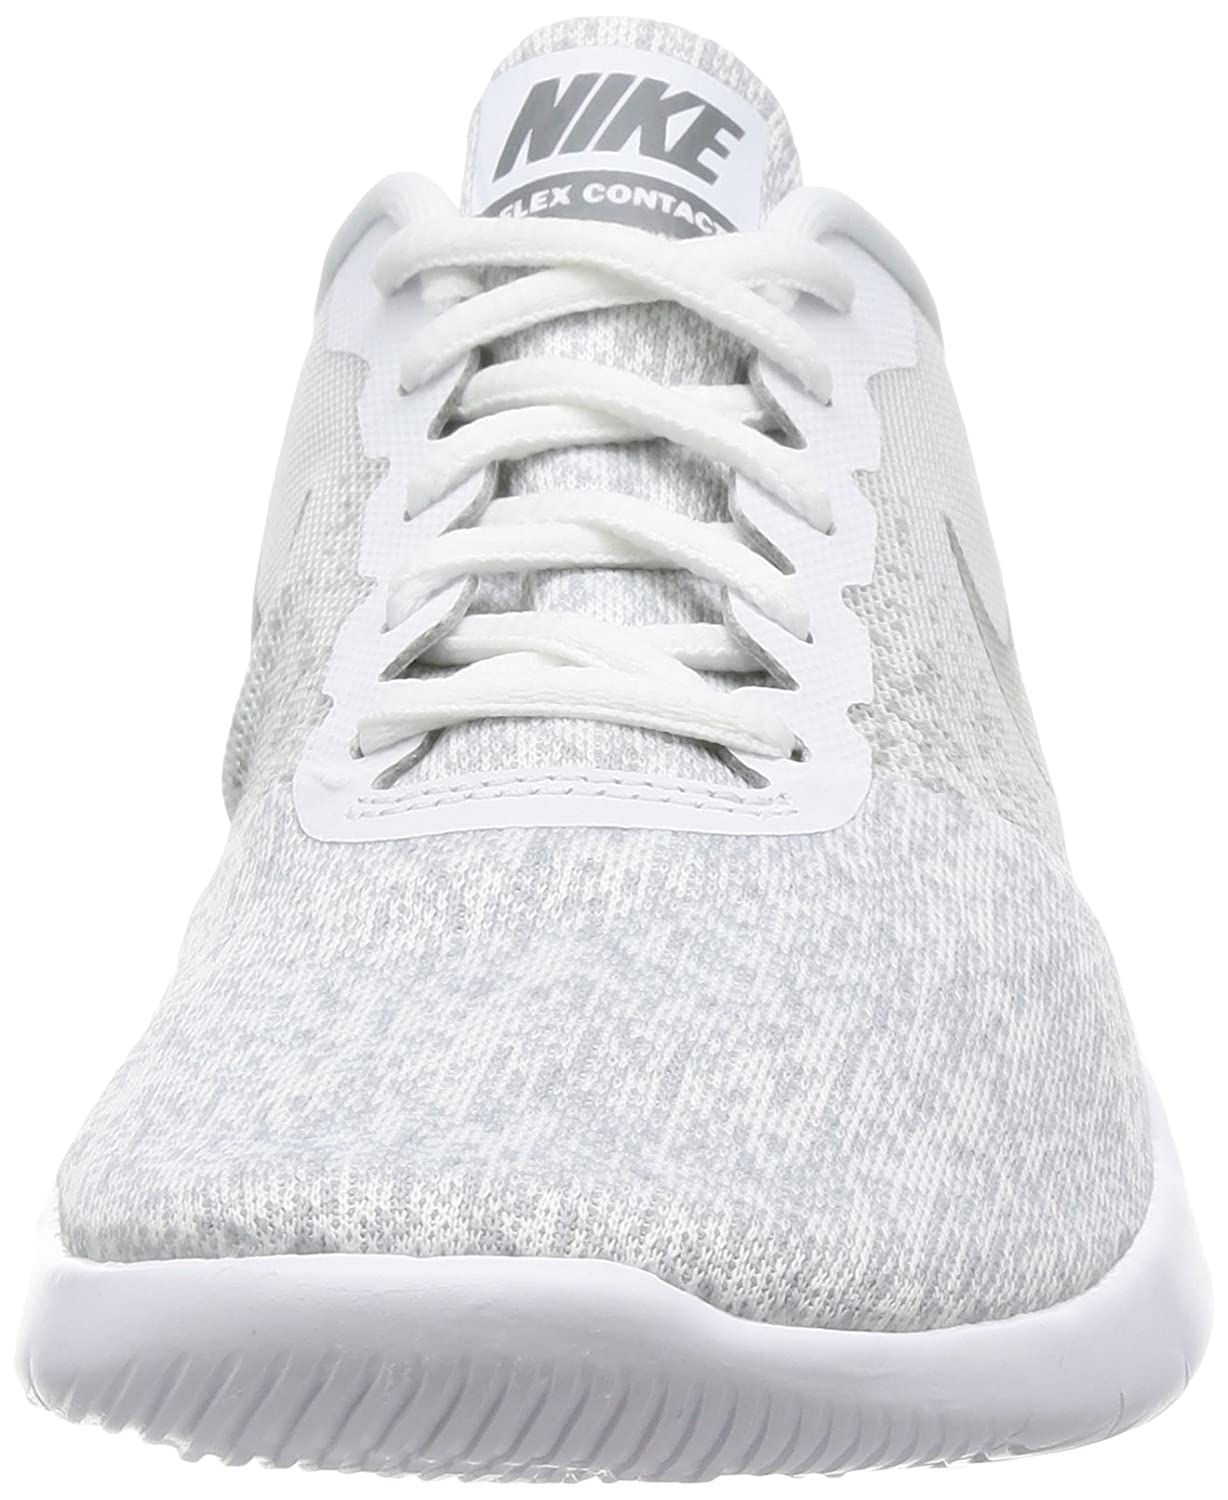 Zapatillas deportivas NIKE Womens Grey Flex Contact Blanco Wolf